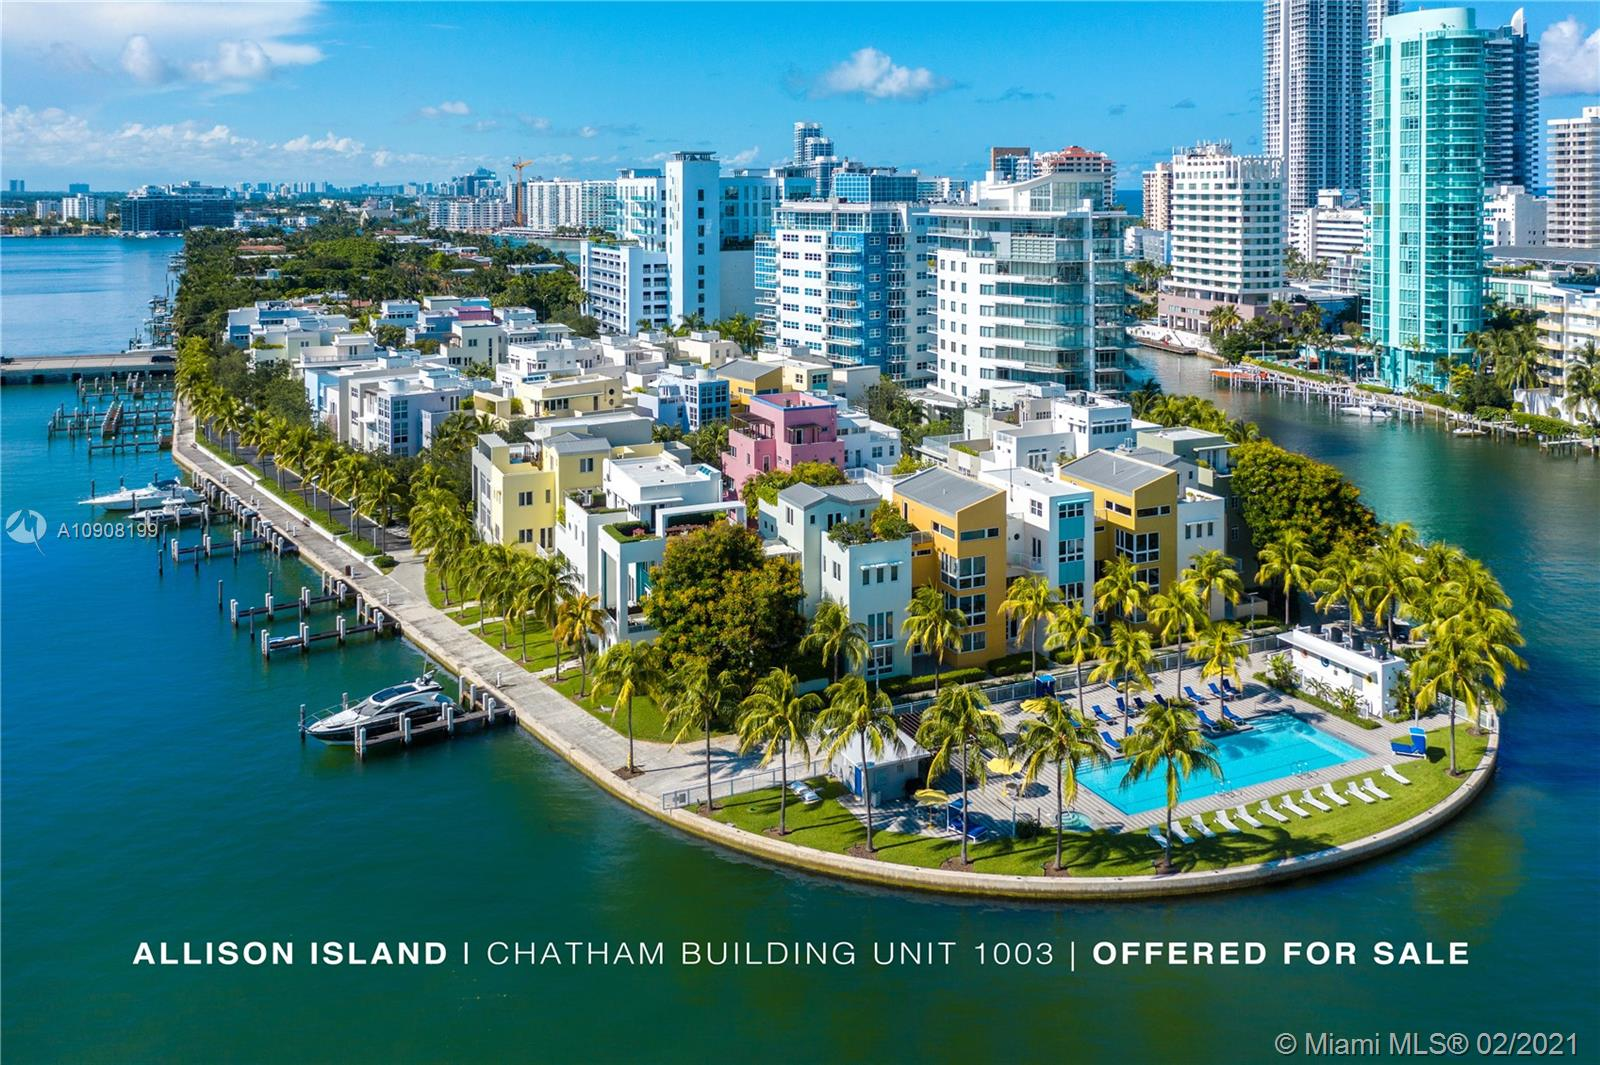 Modern 3BD / 3.5BA in Highly desired AQUA Allison Island in Miami Beach. This spacious loft style apartment offers over 2,000 SQ FT of living space, 12 FT ceilings, floor-to-ceiling glass, S/S appliance, marble counter, over 400 SQ FT of balcony space with amazing ocean and intracoastal views. AQUA offers an array of unmatched amenities exclusively for residents. From a full-service spa to a mango grove to a neighborhood swimming pool.